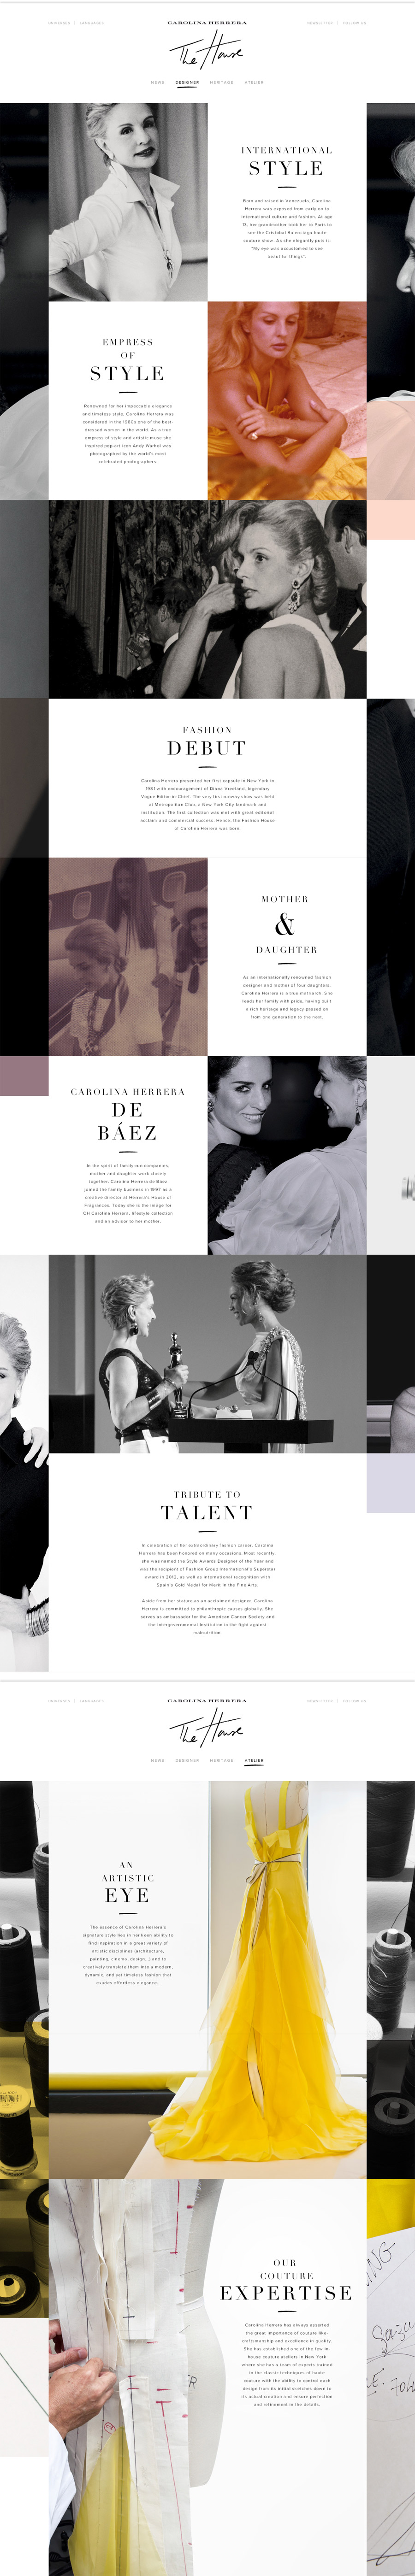 Carolina Herrera - The House - Inspiración web design